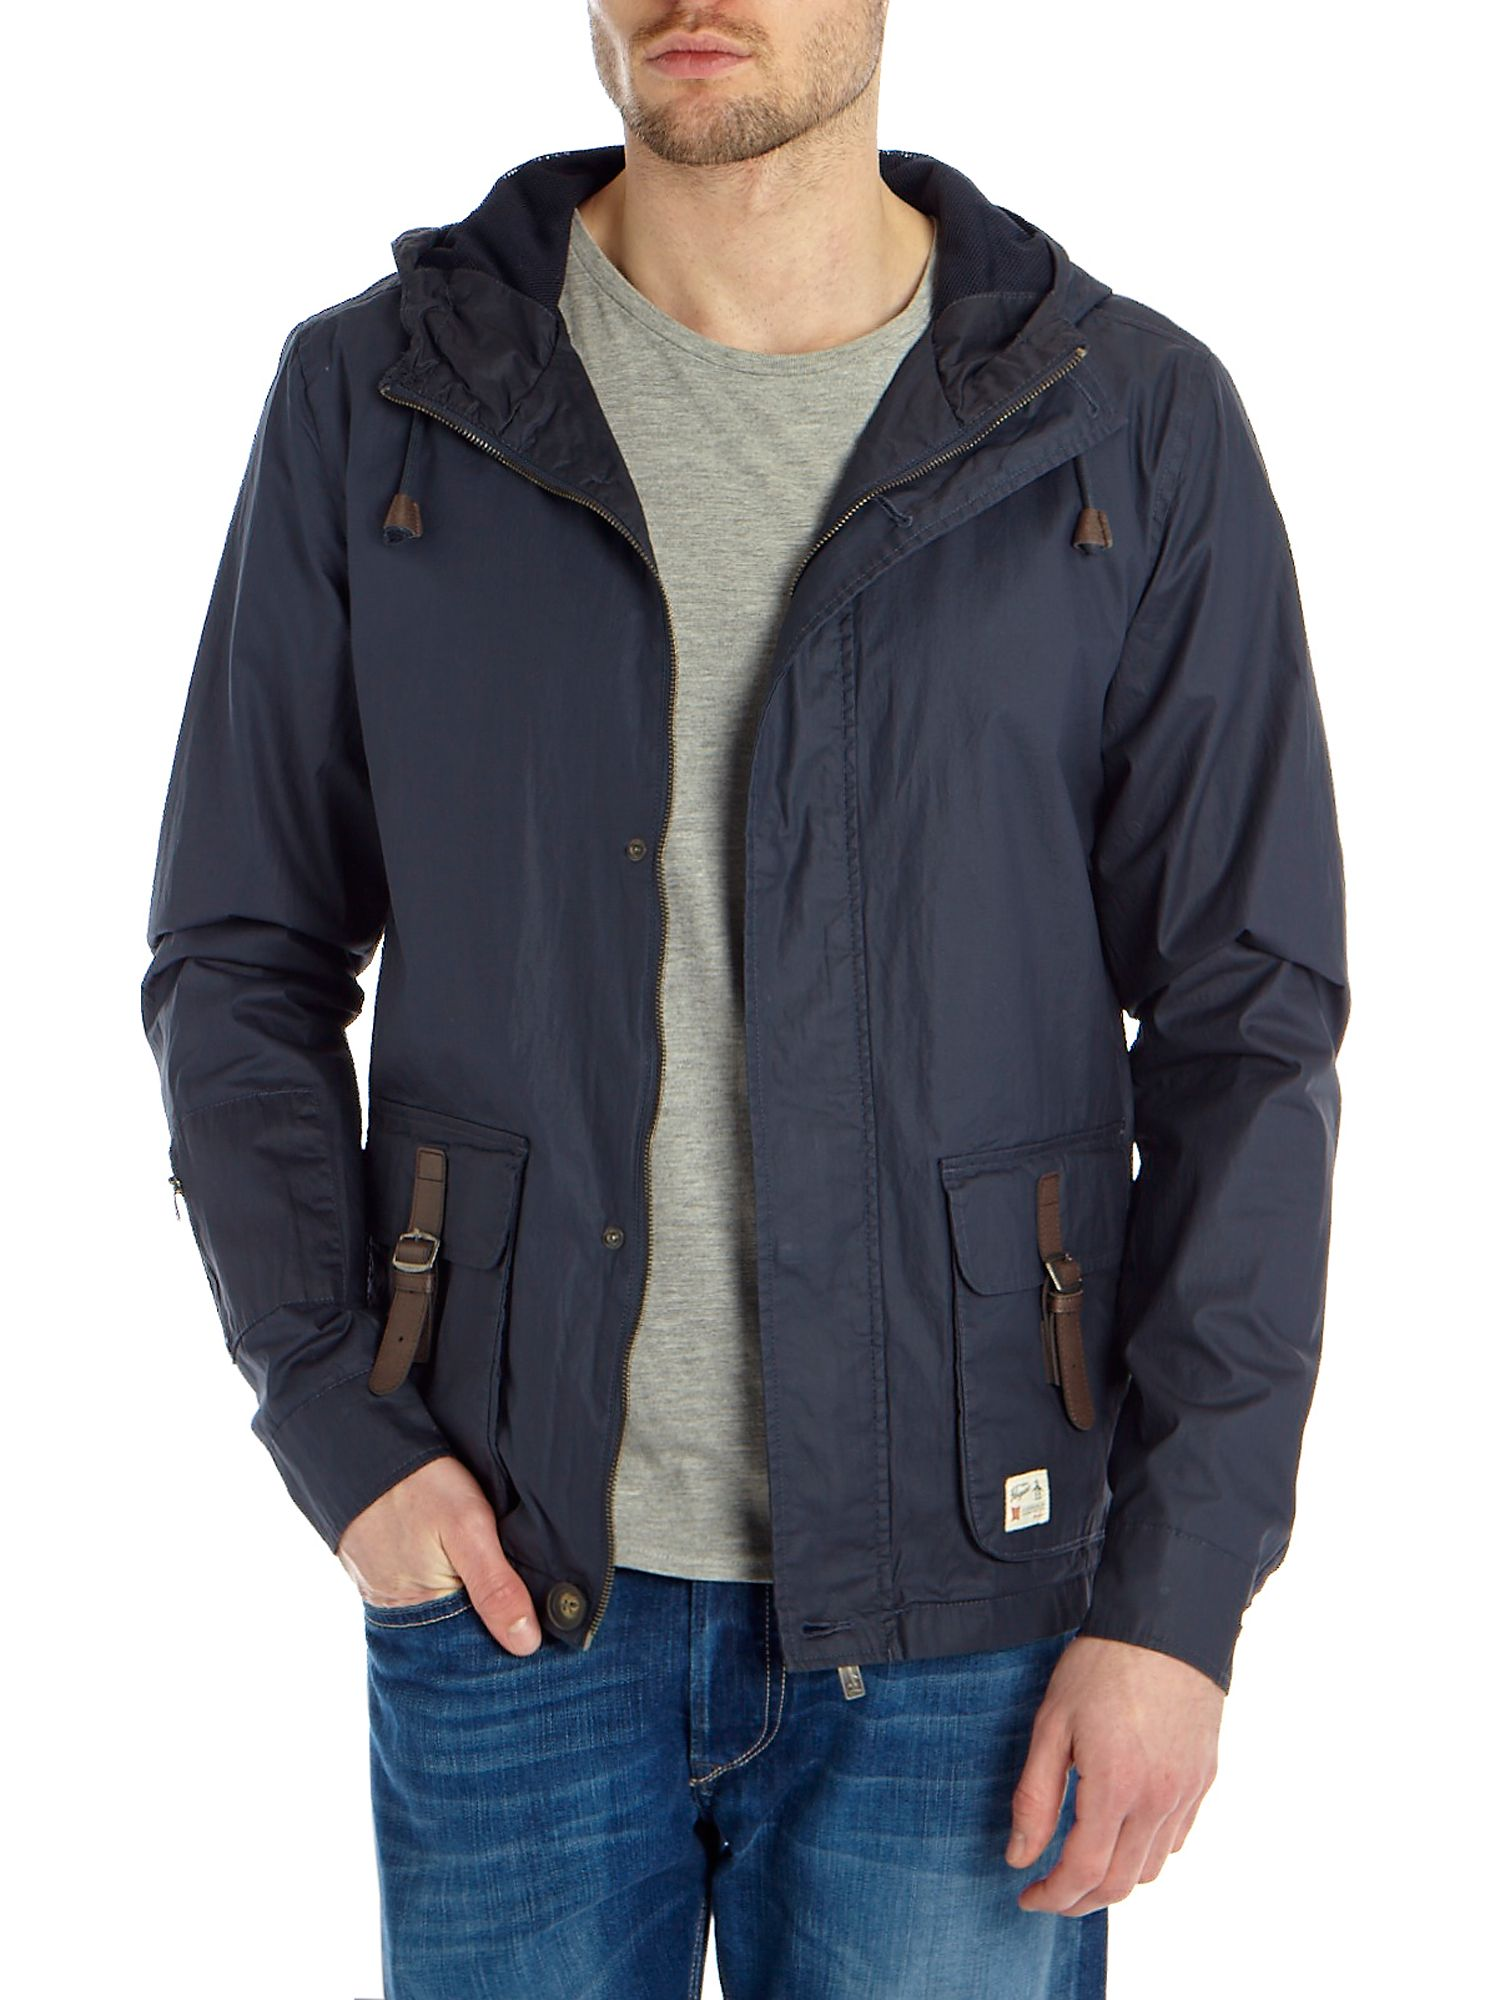 Hooded jacket with buckled pocket detail